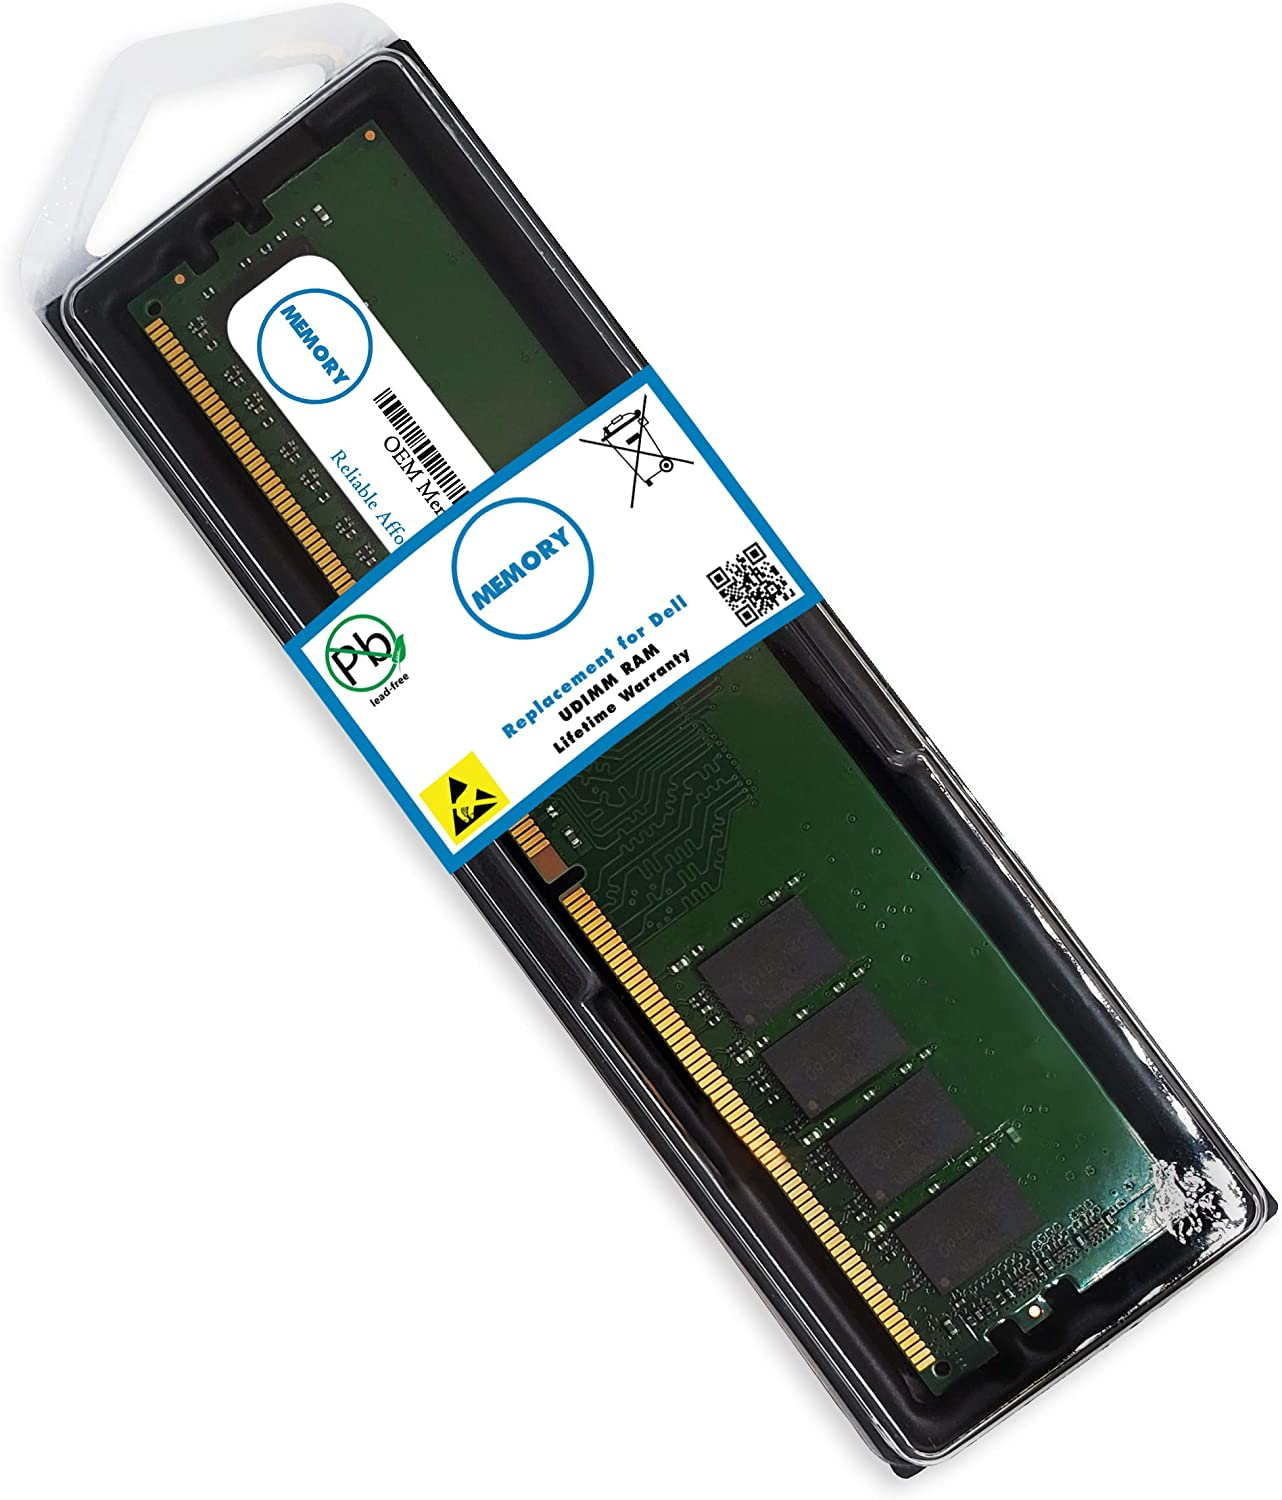 8GB SNPY7N41C/8G AA101752 288-Pin DDR4-2666 PC4-21300 UDIMM RAM Replacement Origin OEM Memory for Dell